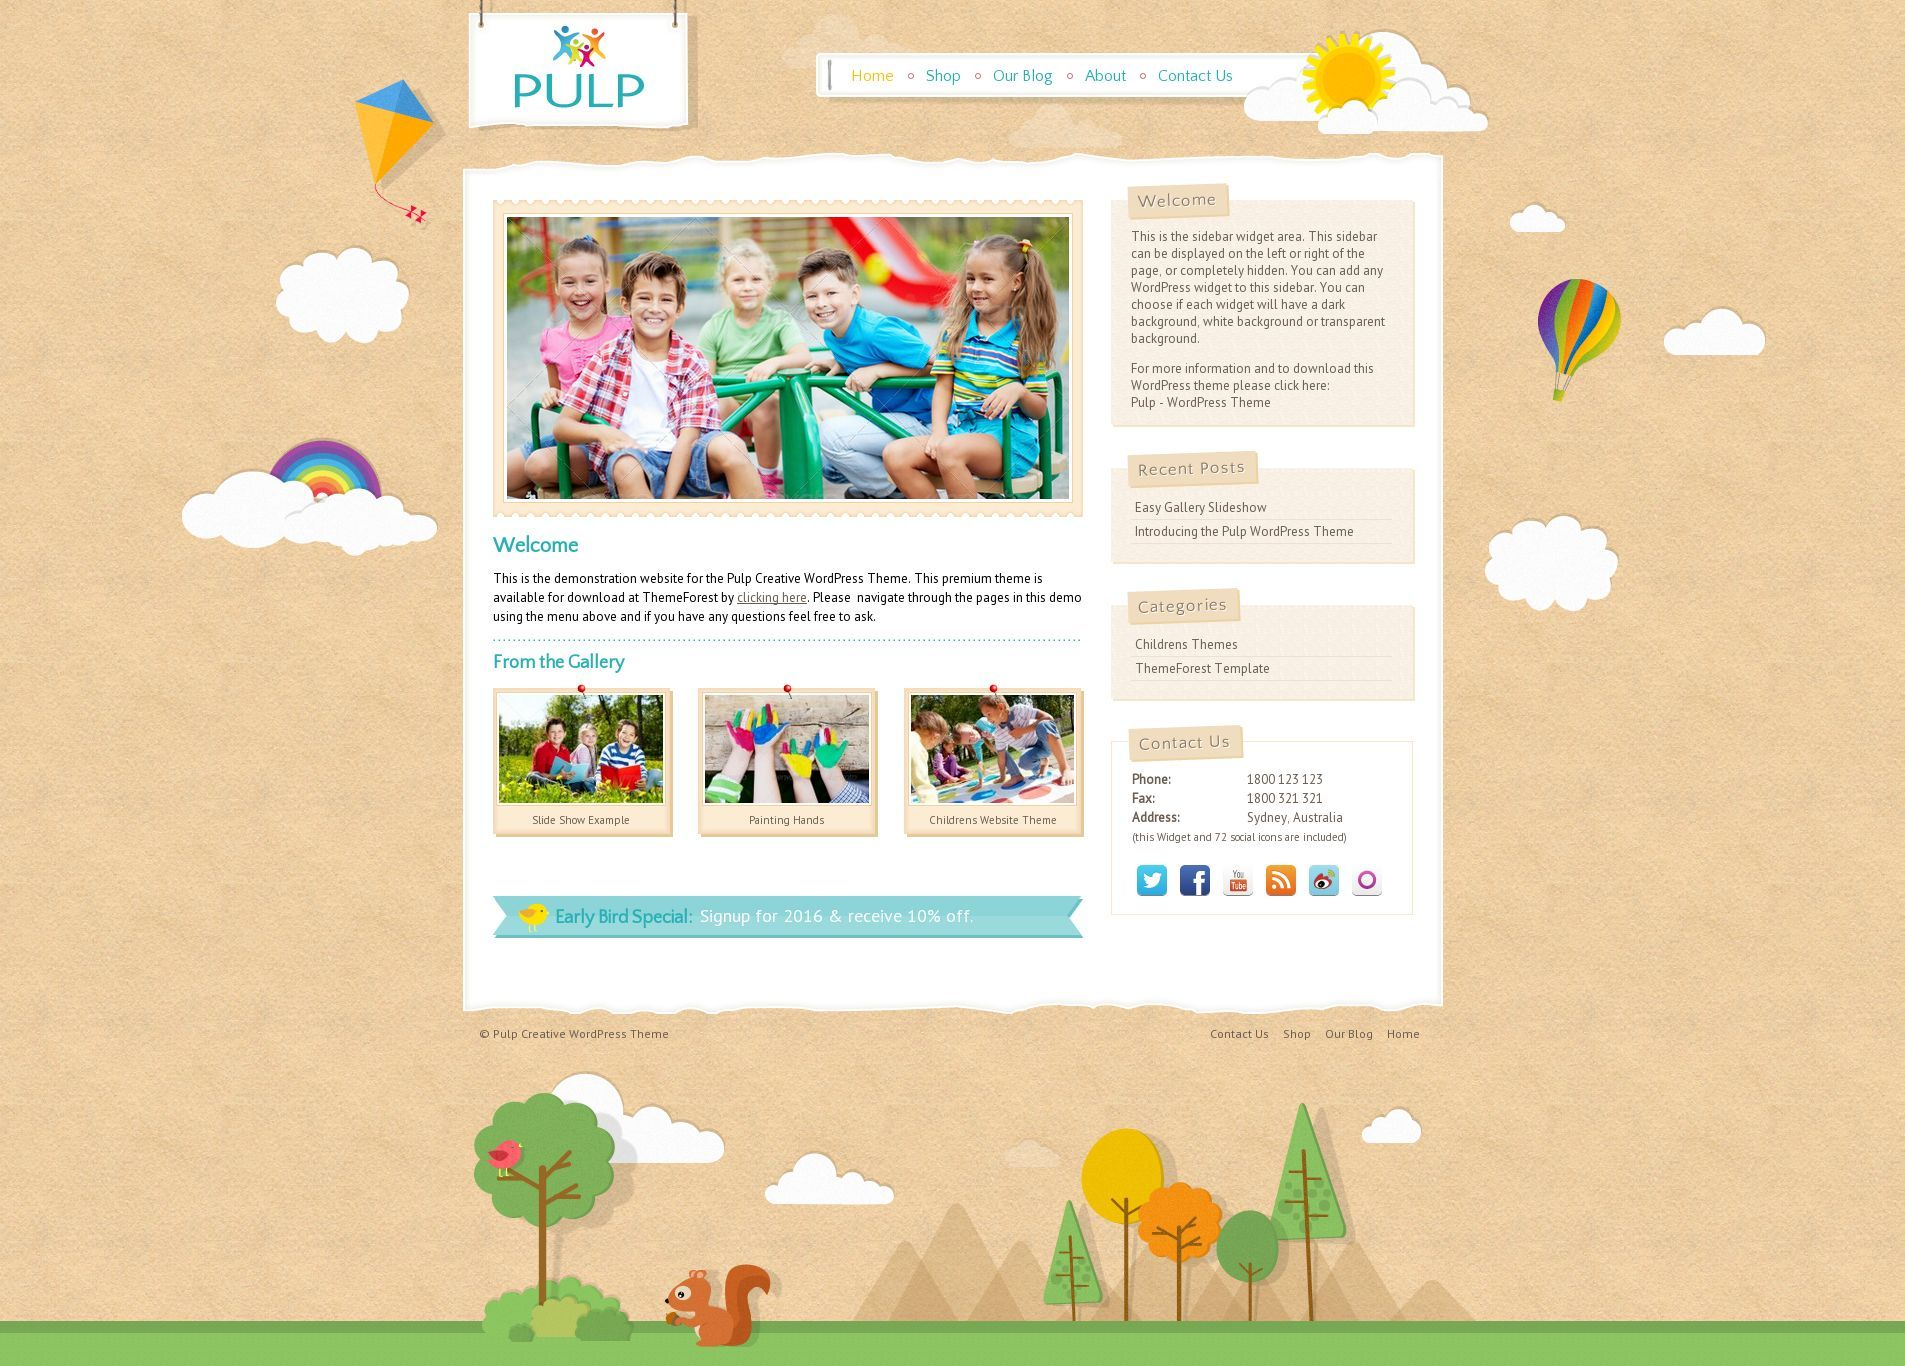 Pulp - Responsive Creative Blog & Shop - Creative responsive home page layout with a gallery.